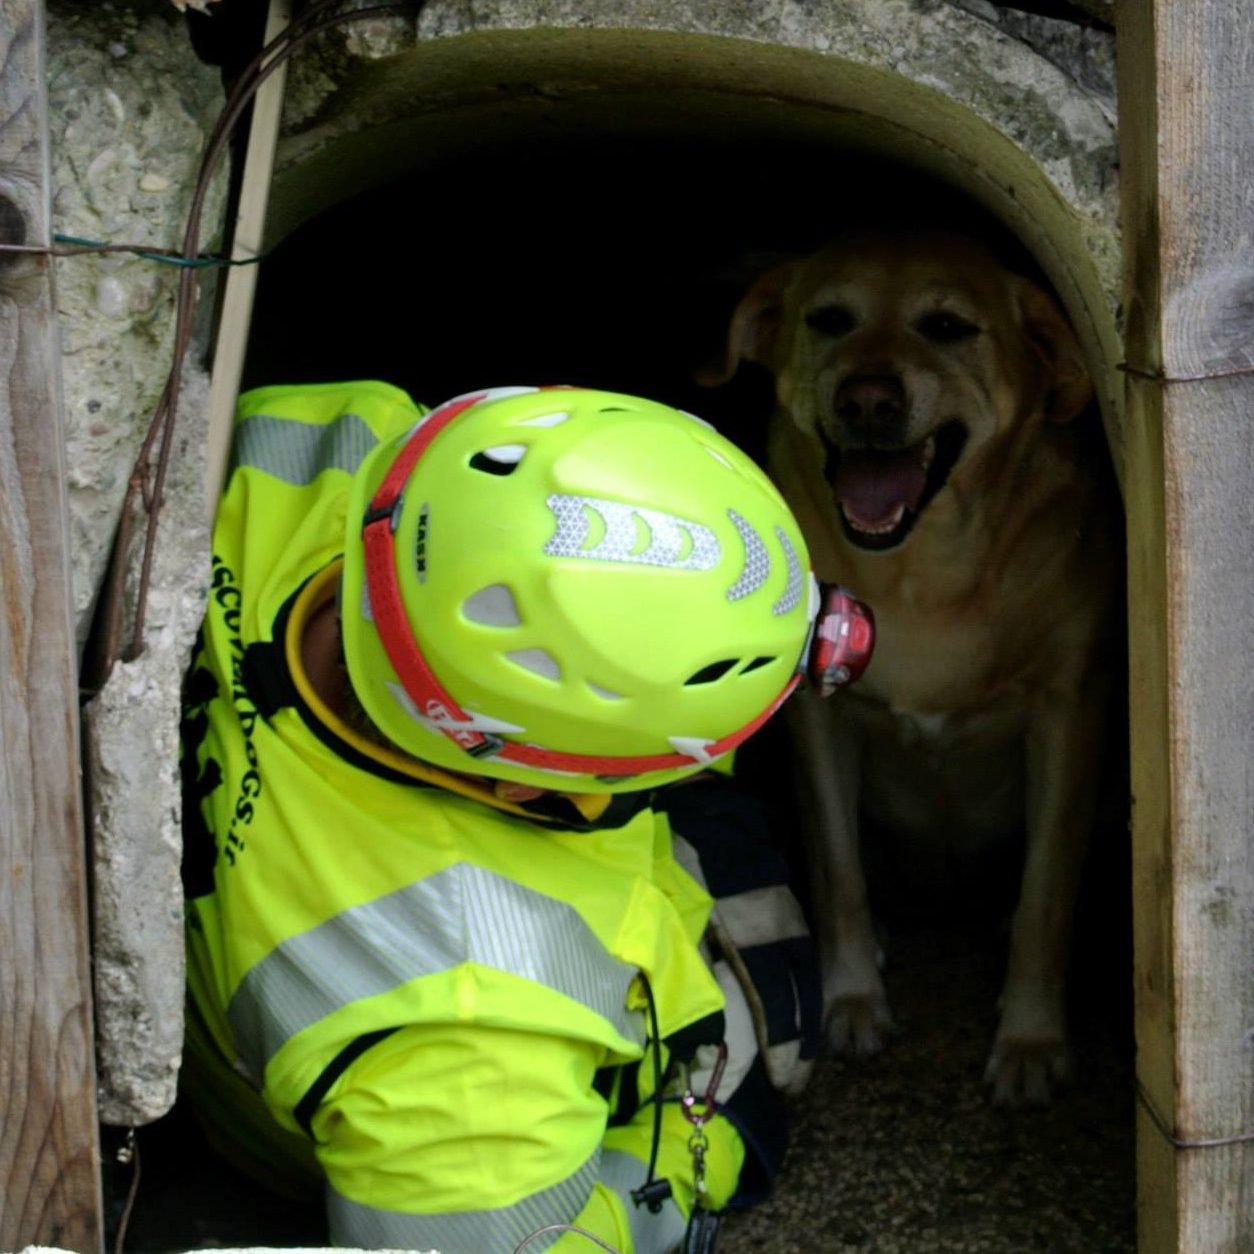 Search&Rescue Dogs and Civil Protection